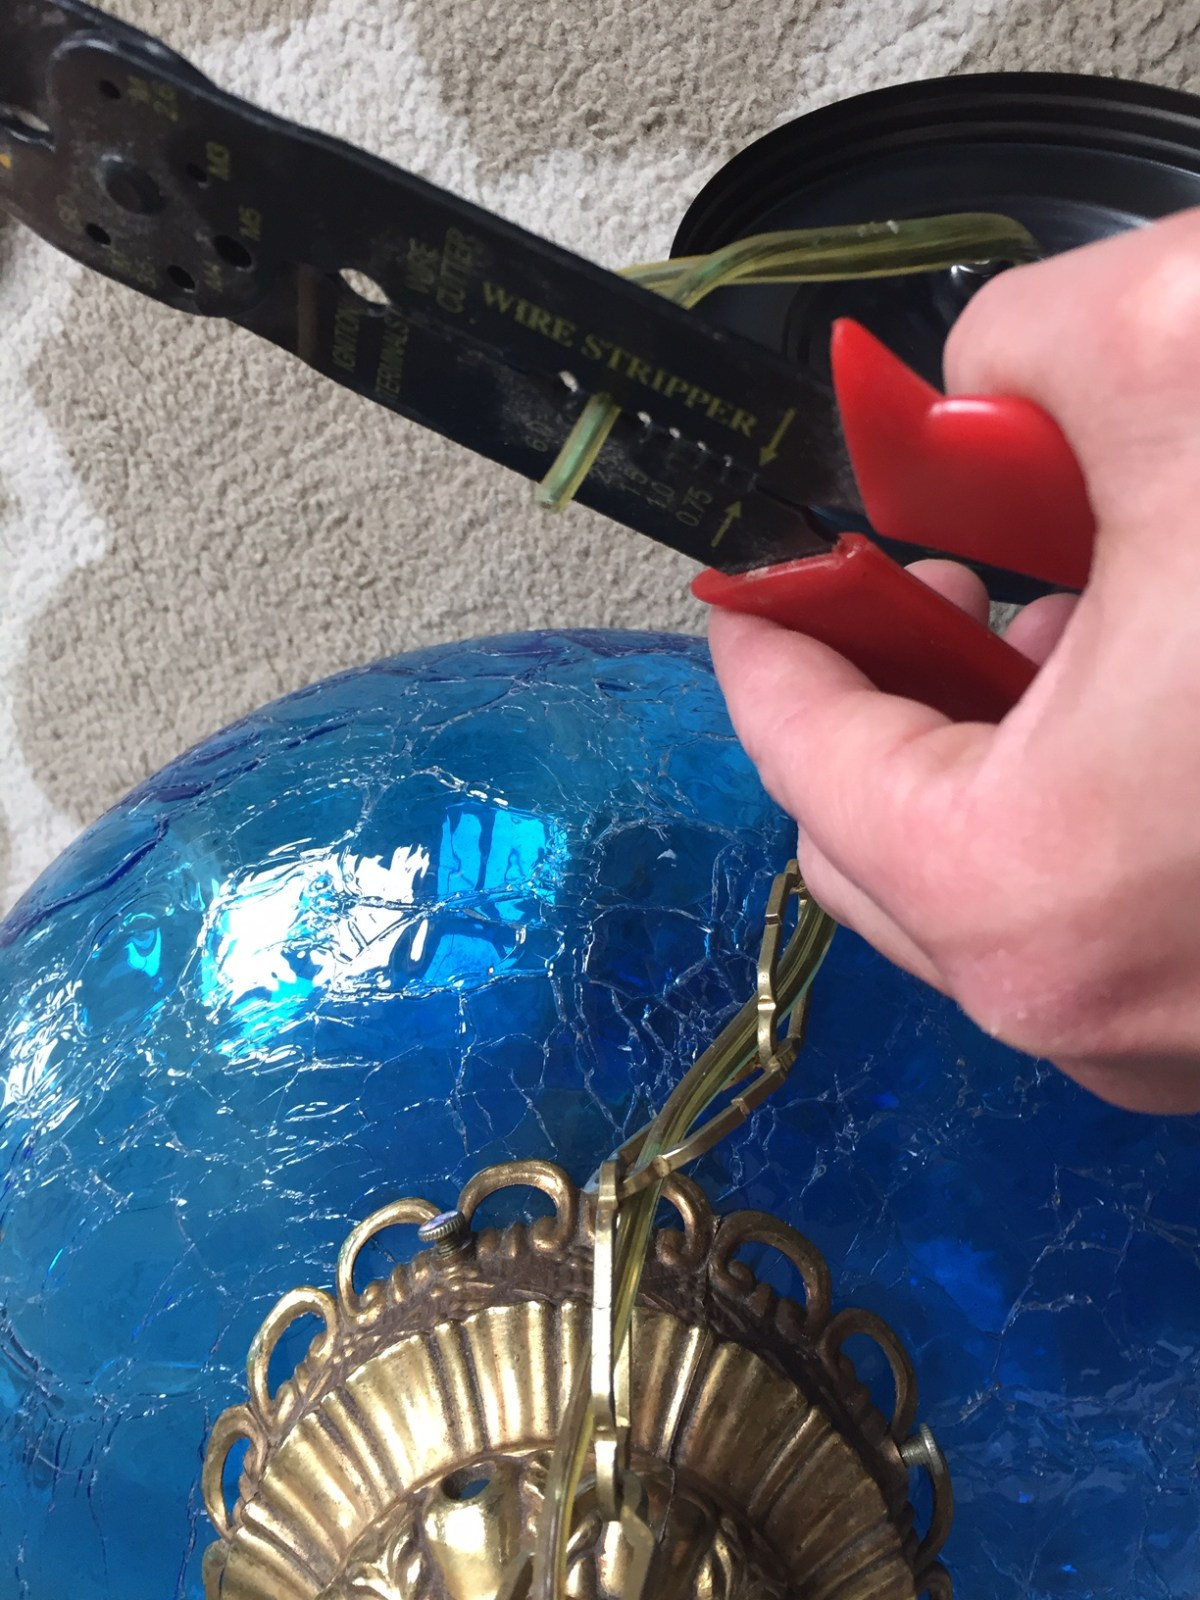 Stripping wire for an antique Tiffany lamp